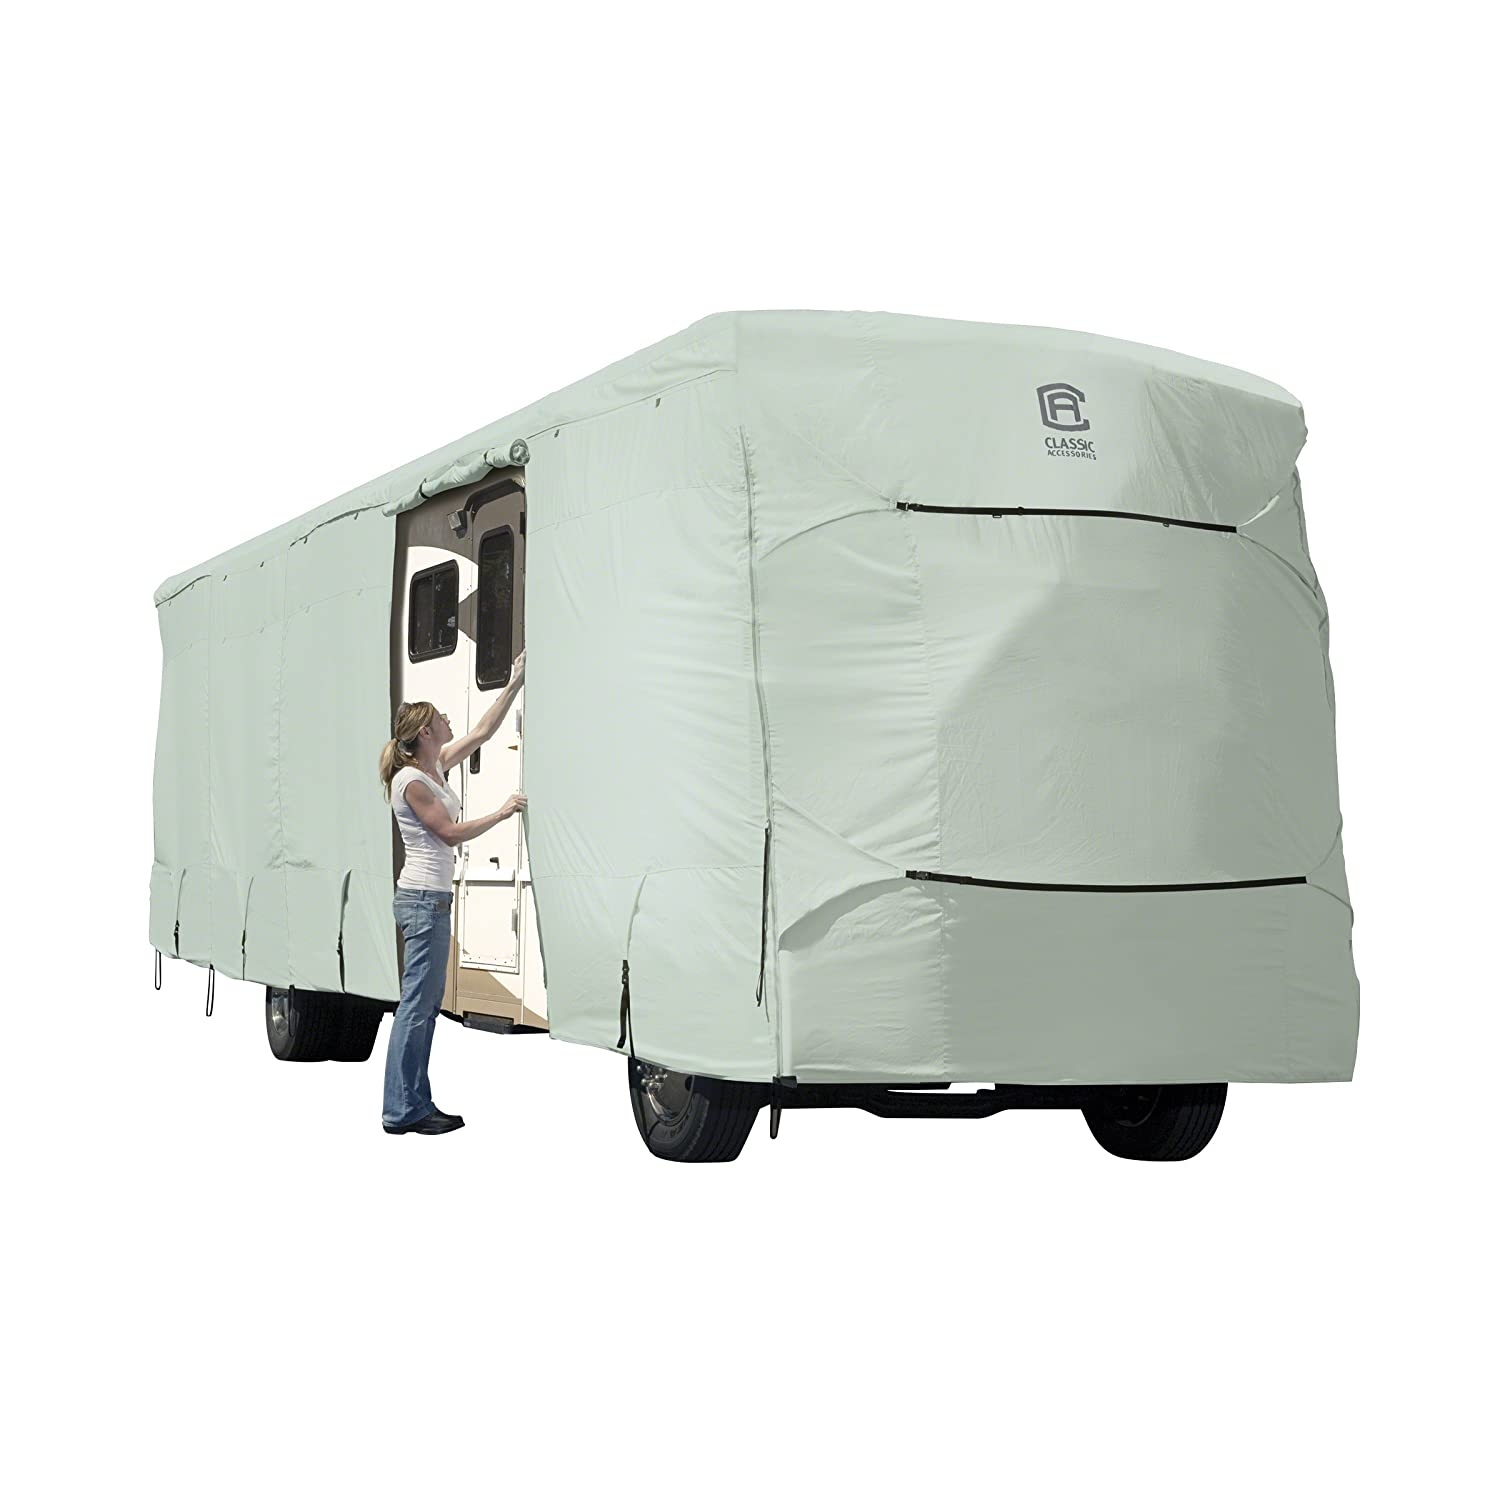 Classic Accessories OverDrive PermaPro Heavy Duty Cover for 20 to 24 Class A RVs